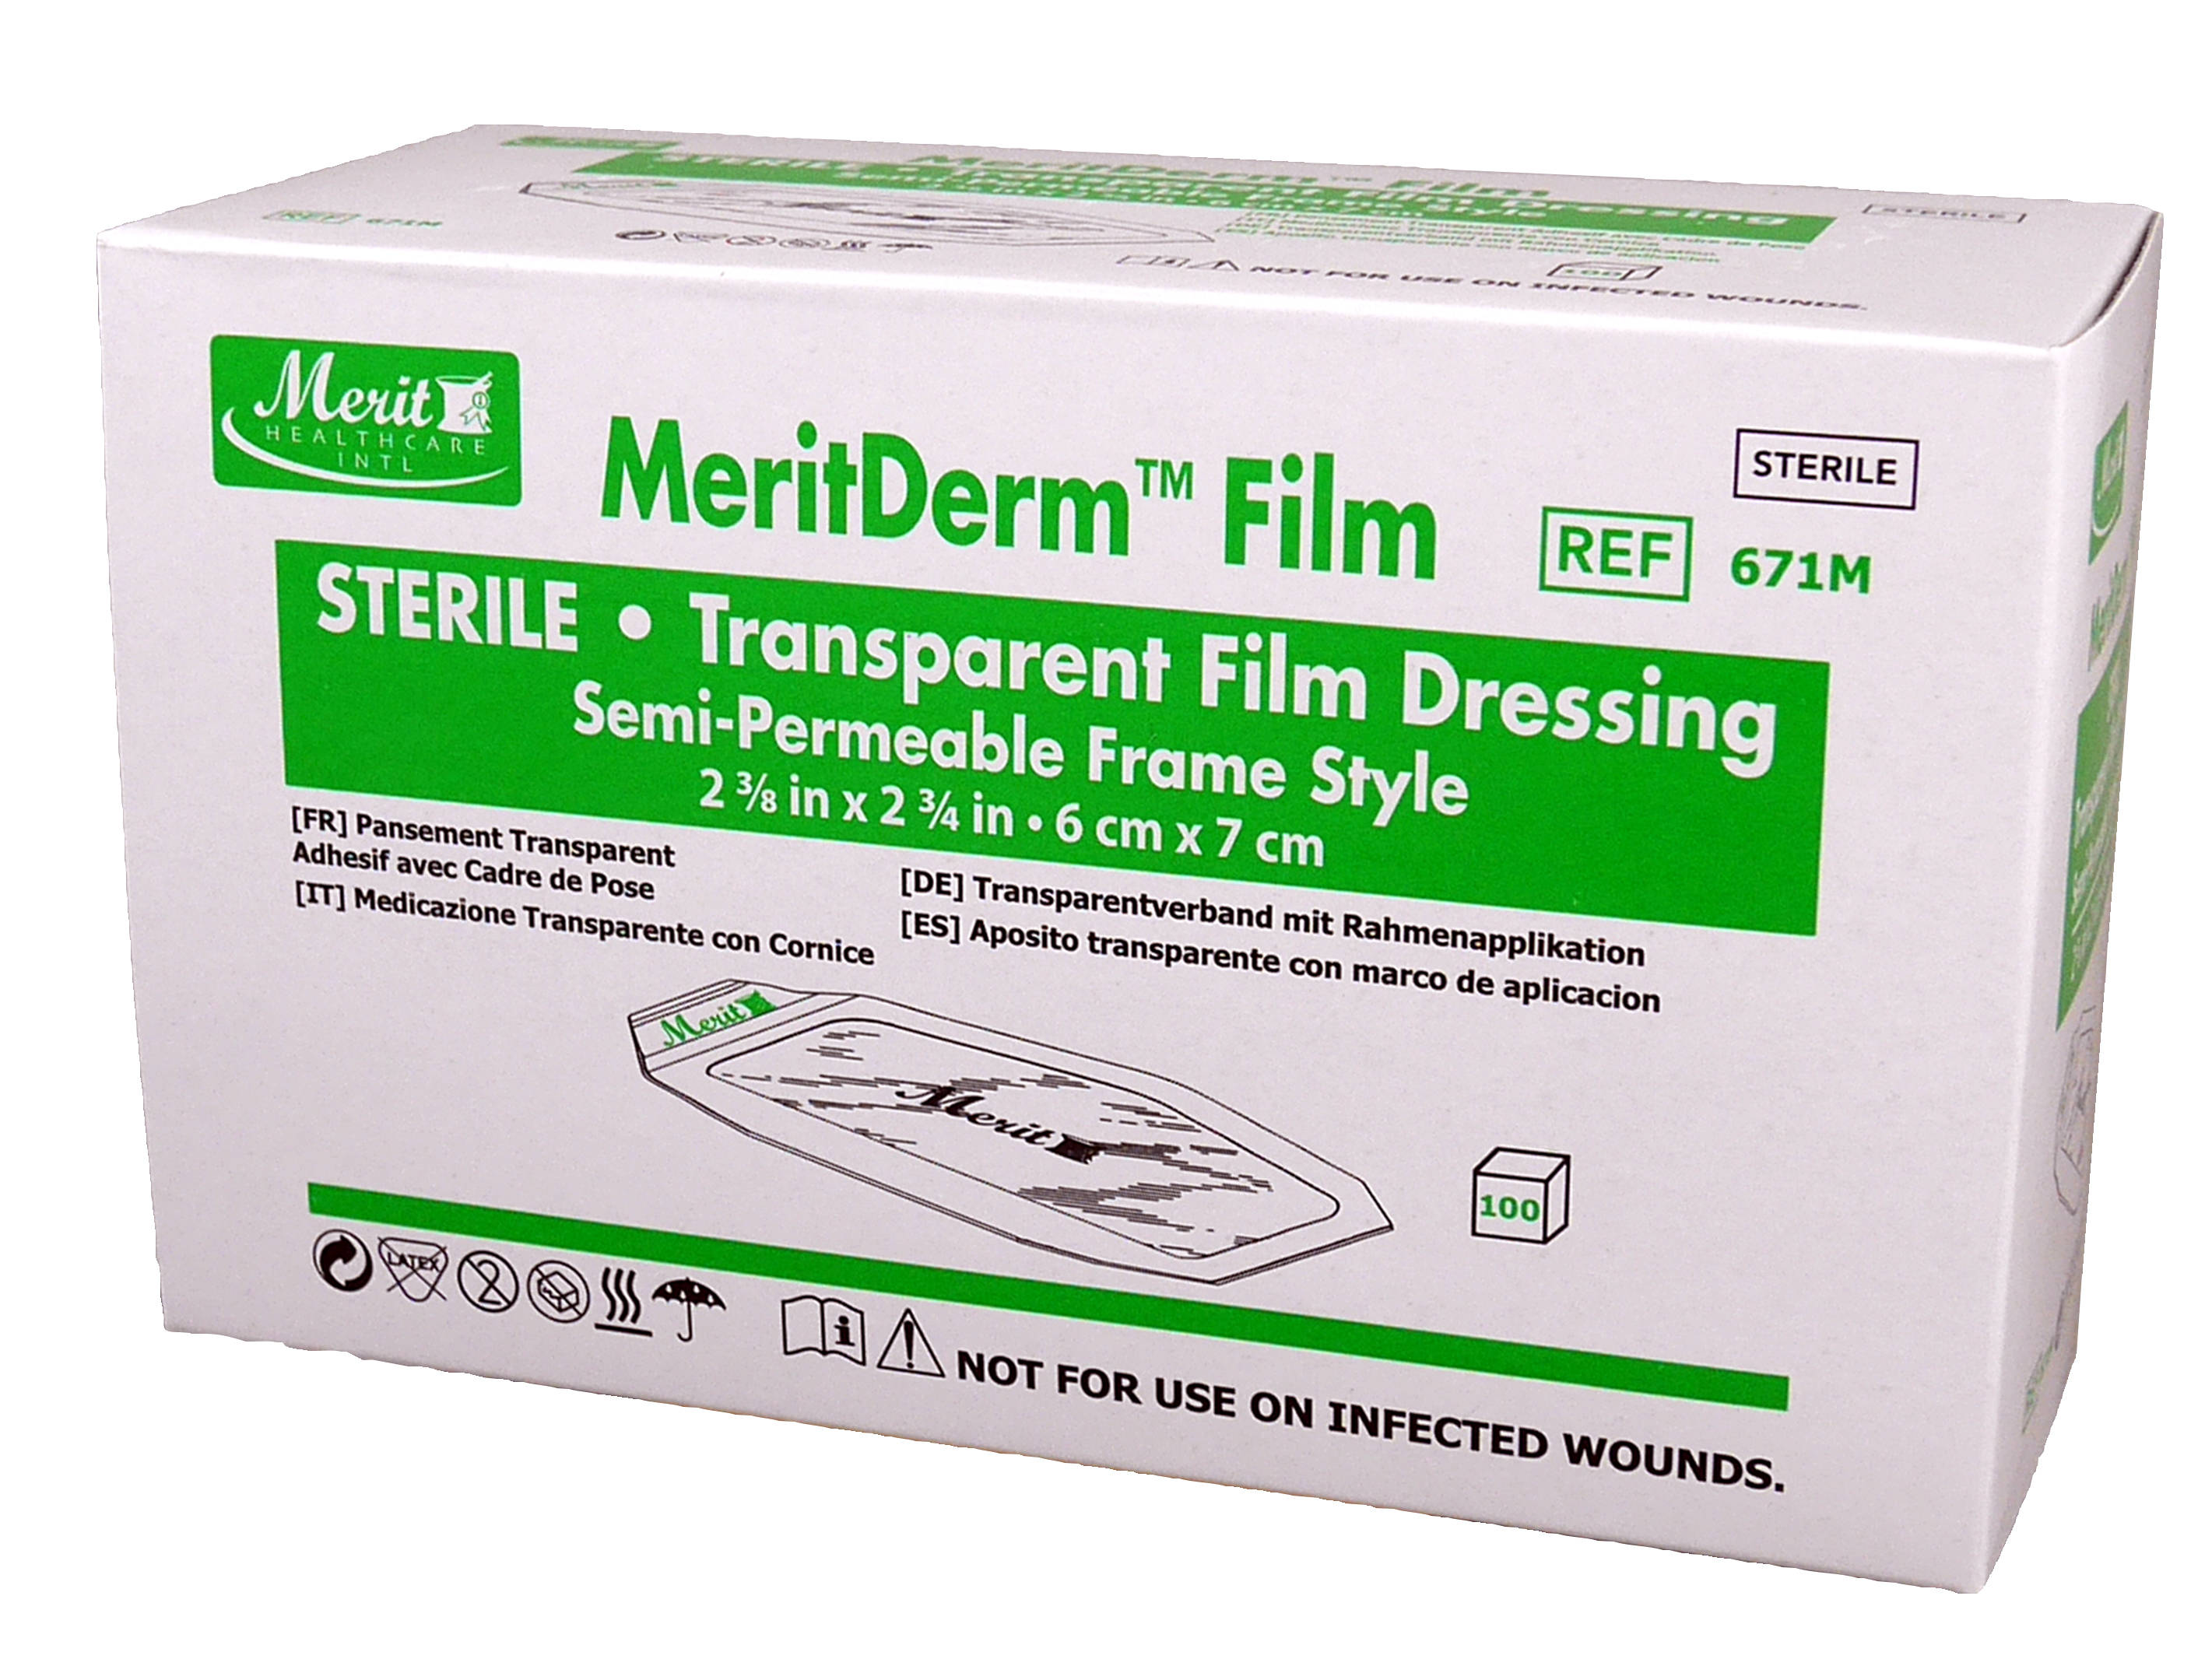 Transparent Film Dressing 2-3/8 X 2-3/4 Inch Frame Style MeriDerm™